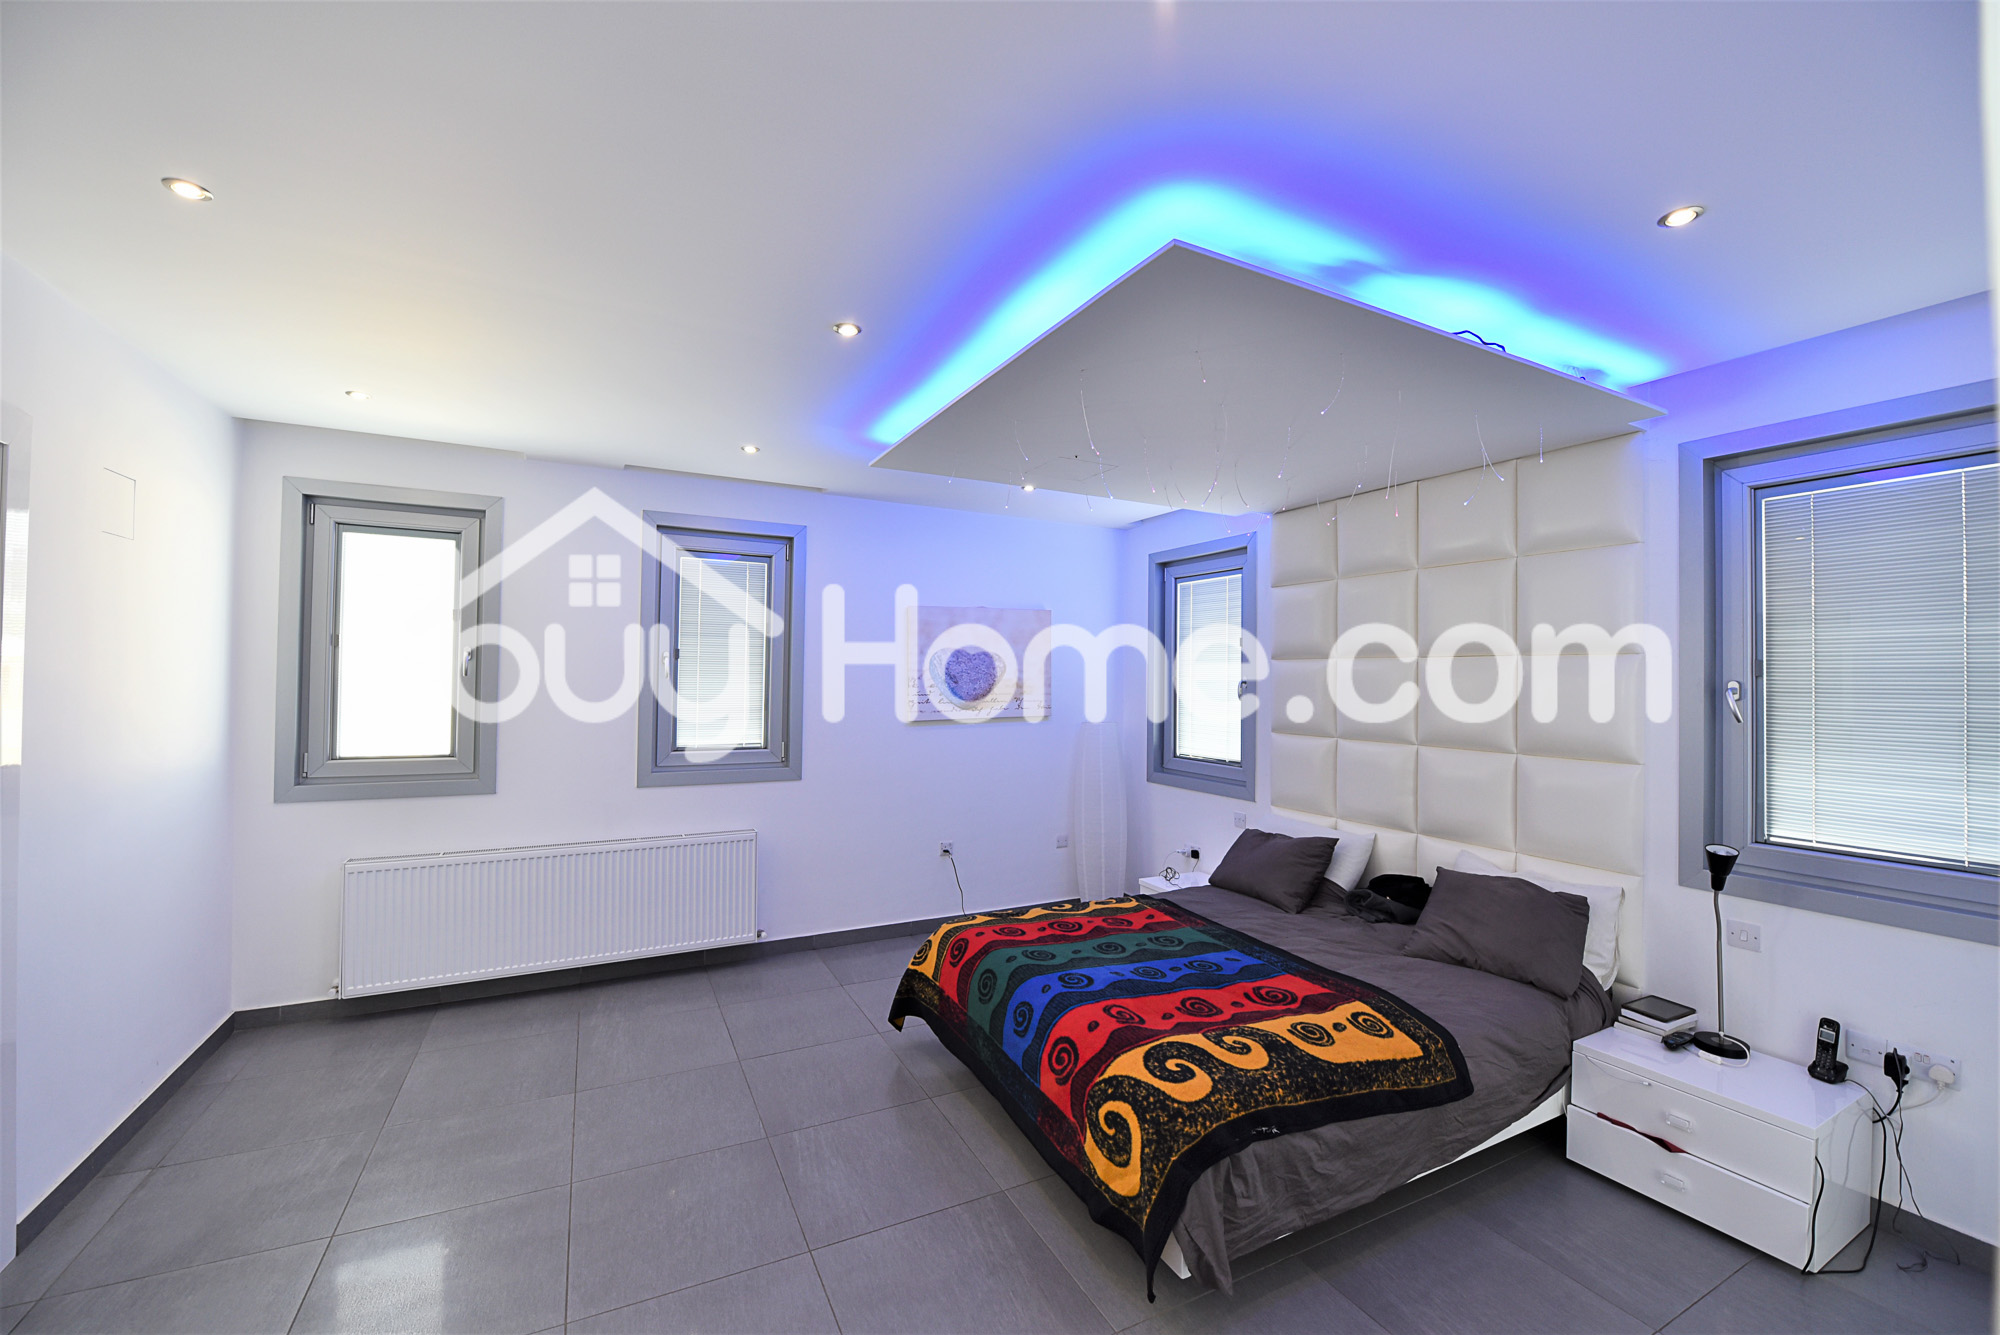 4 Bed Modern Luxury House | BuyHome